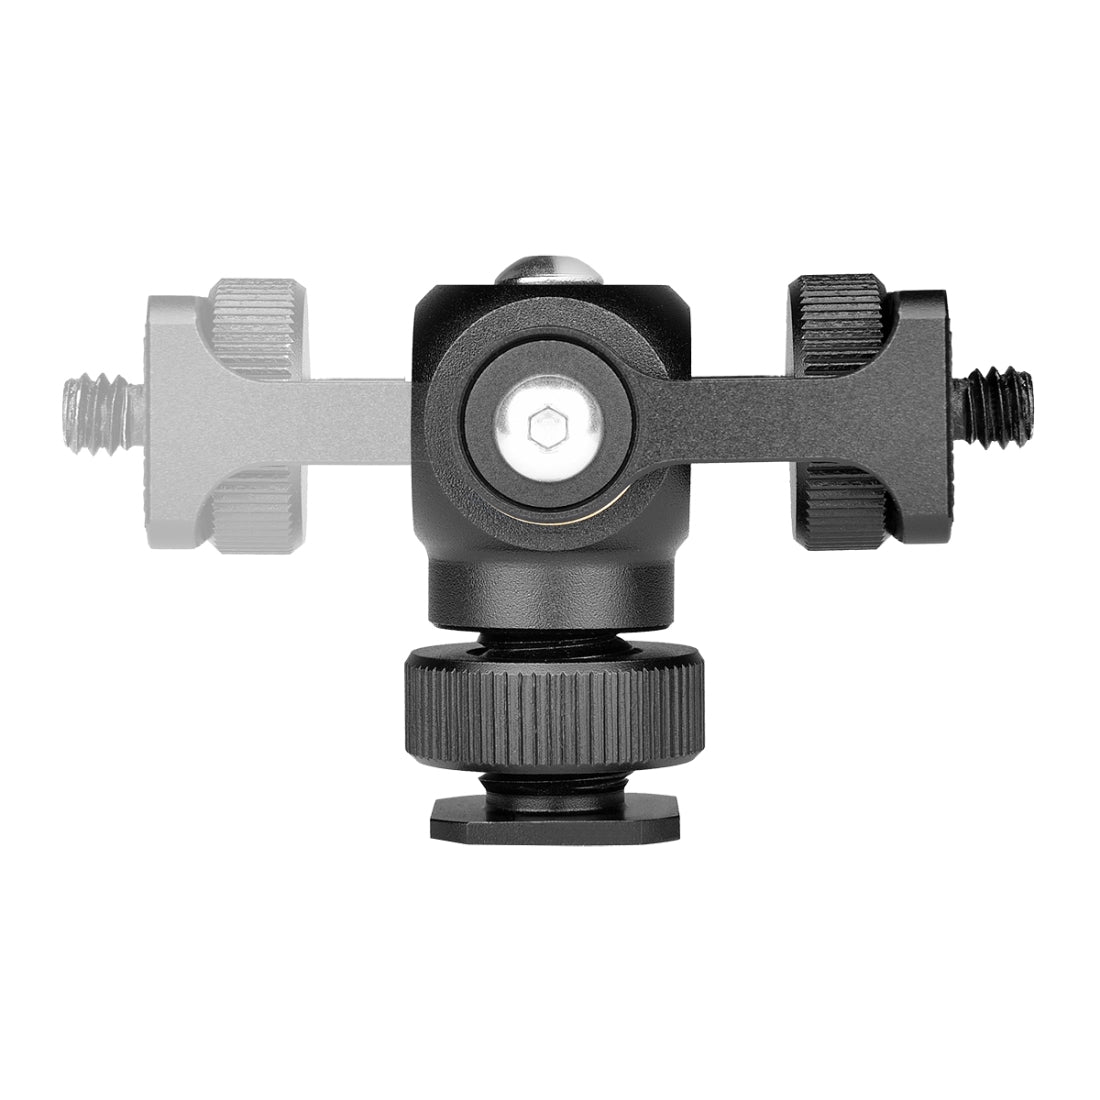 180 Degree Swing Mini Tripod Ball Head Bracket Cold Shoe Mount 1/4 inch Screw Adapter(Black)